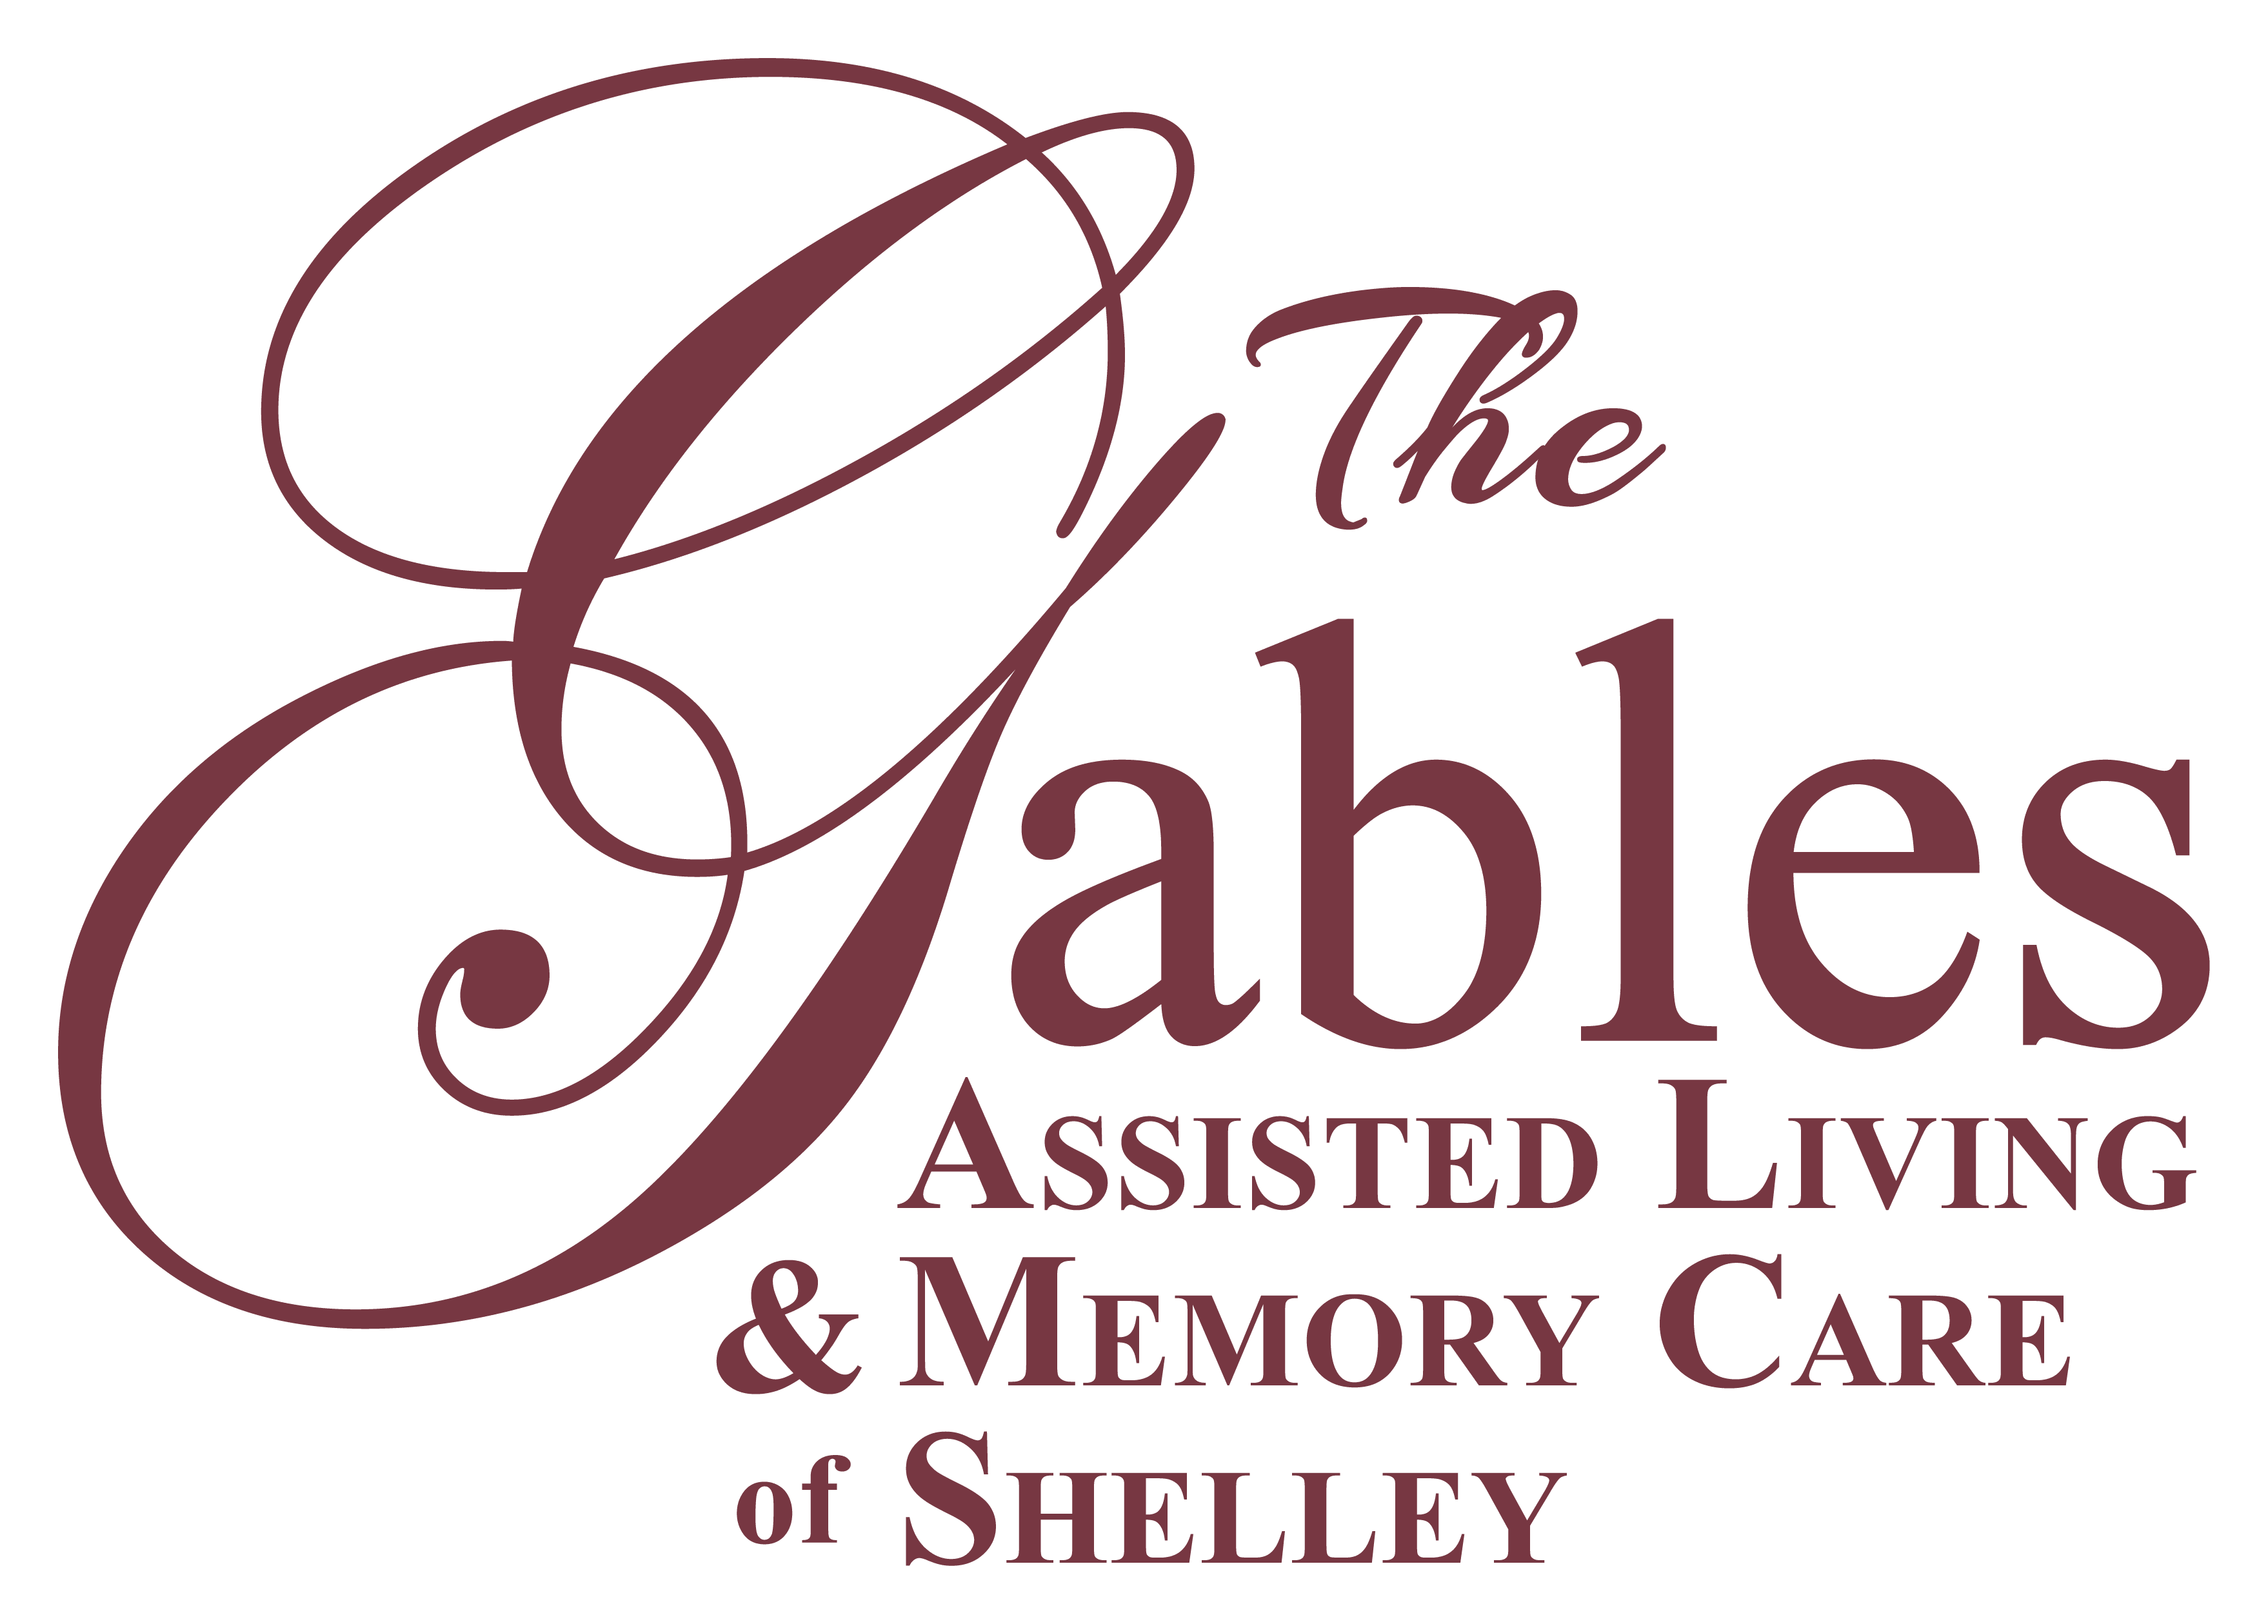 Photo 1 of The Gables of Shelley Memory Care